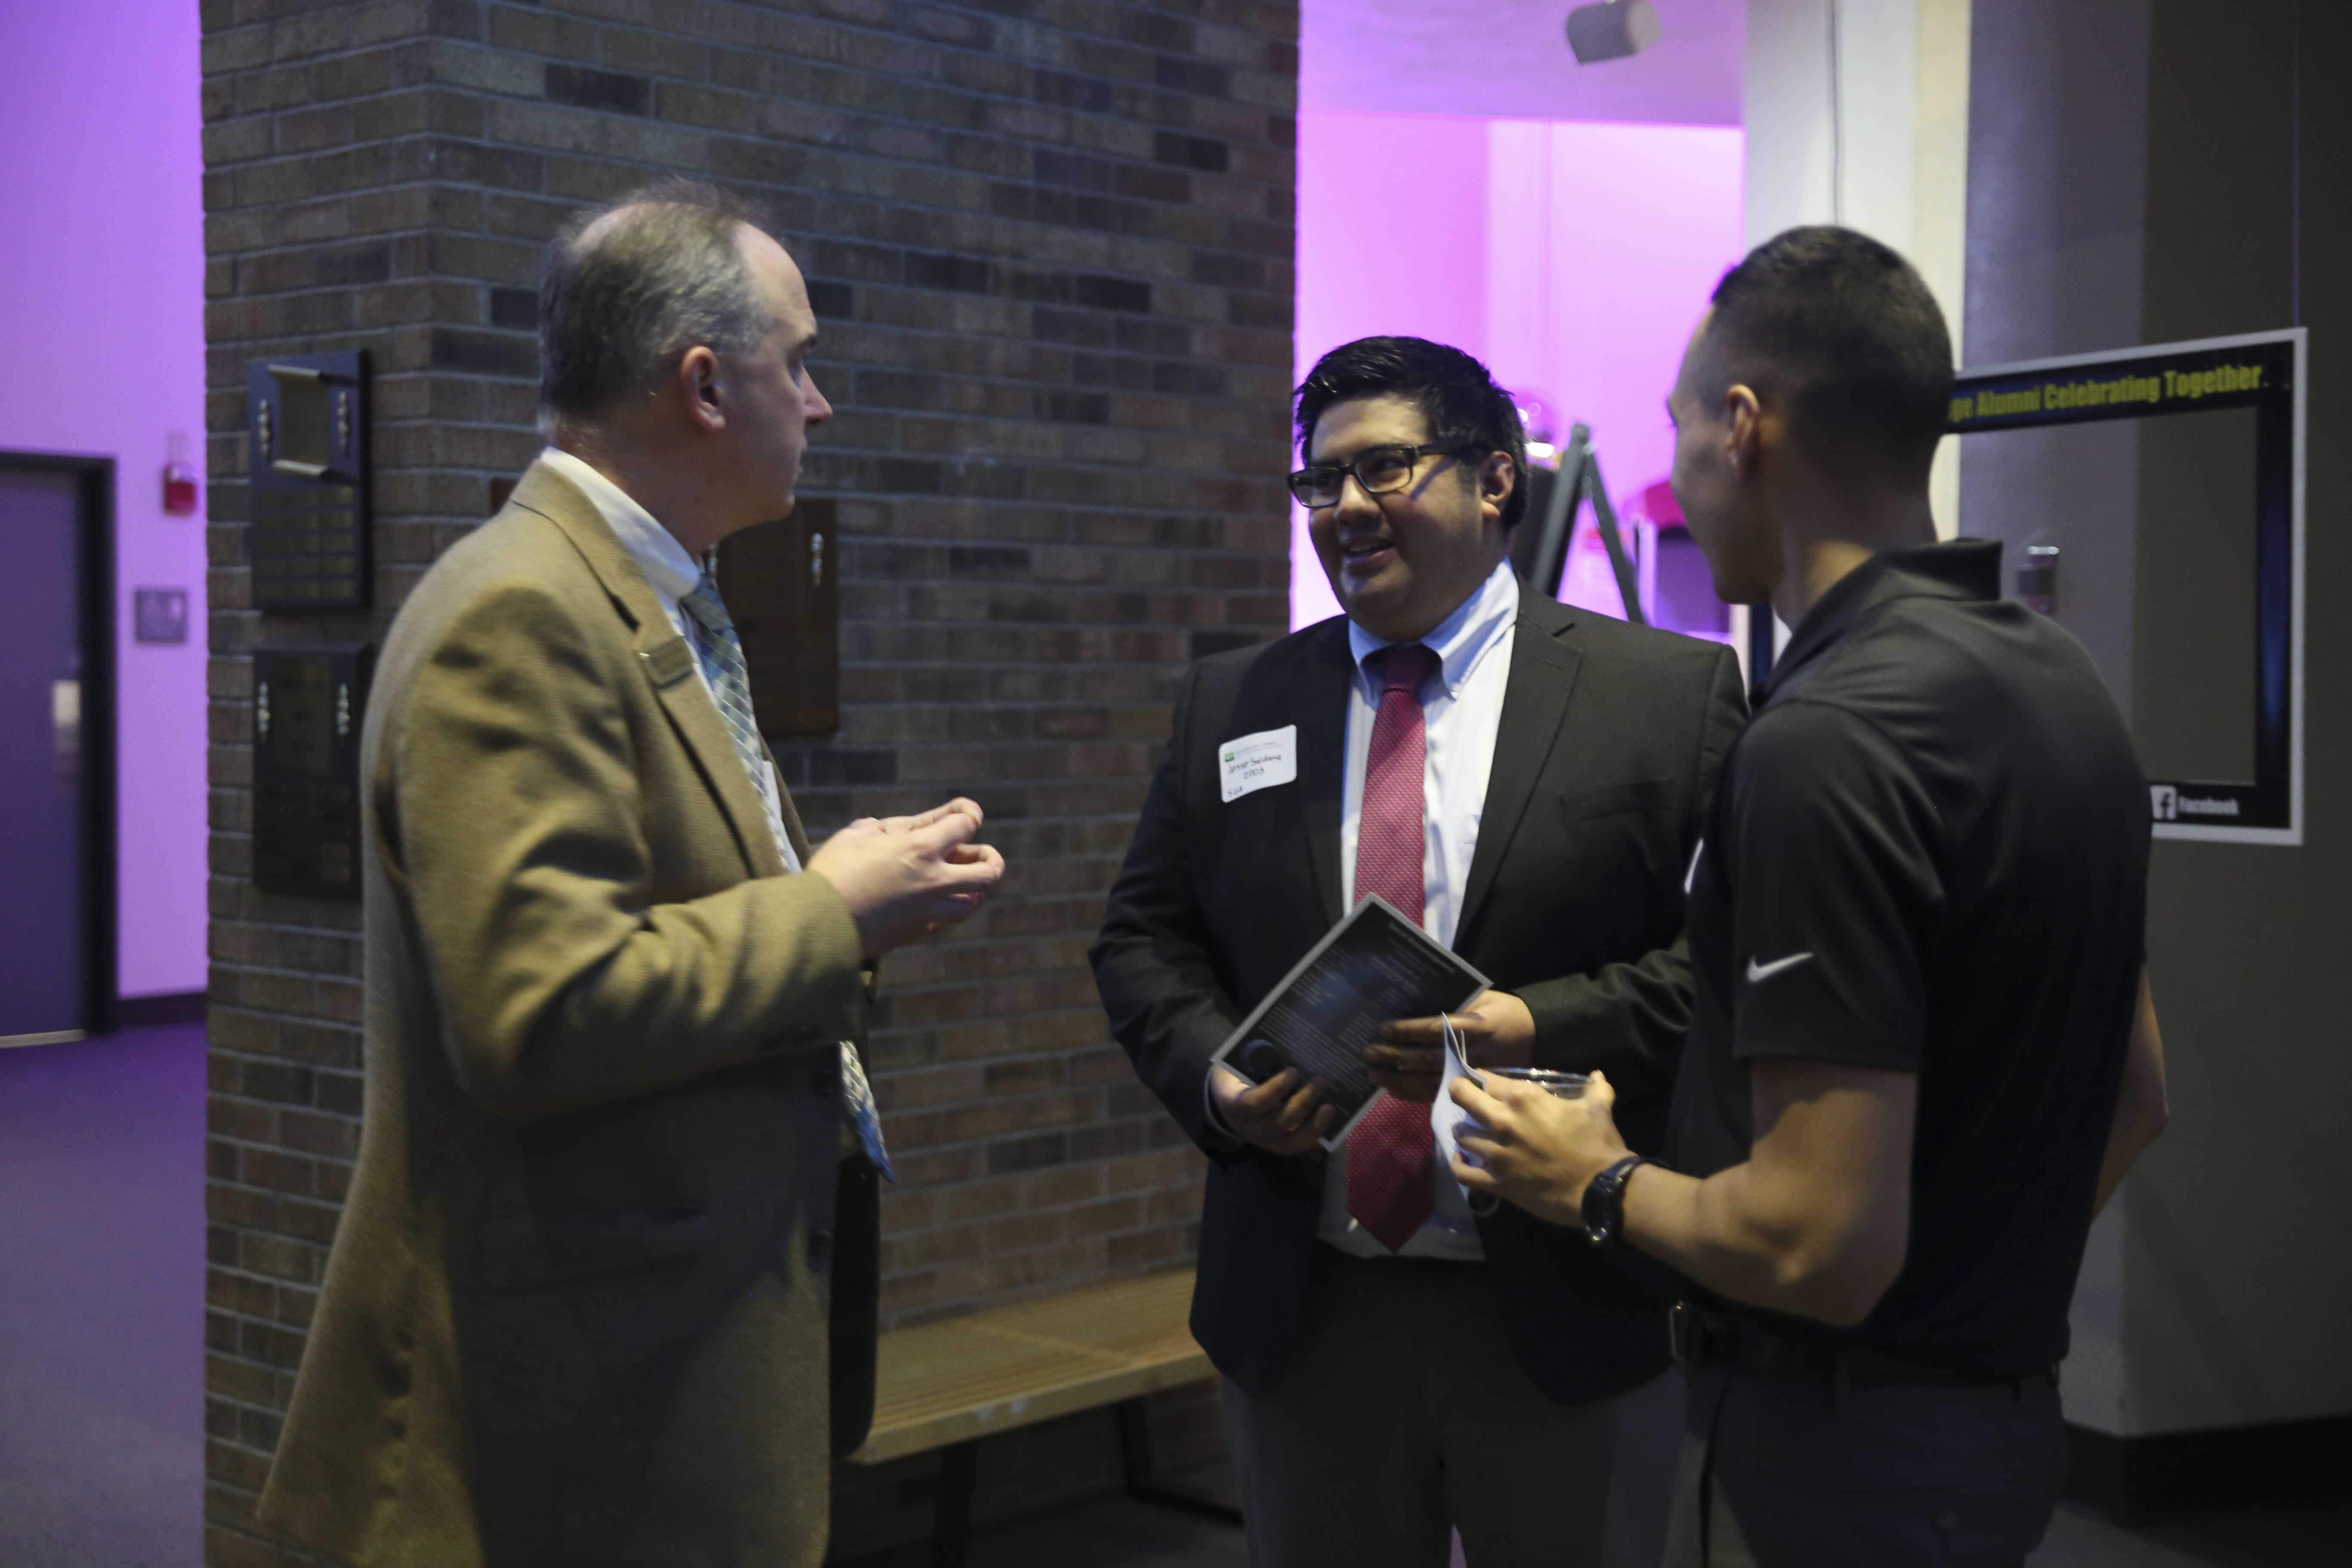 Brookhaven President Thom Chesney speaks to Brookhaven alumnus Jesse Saldana.